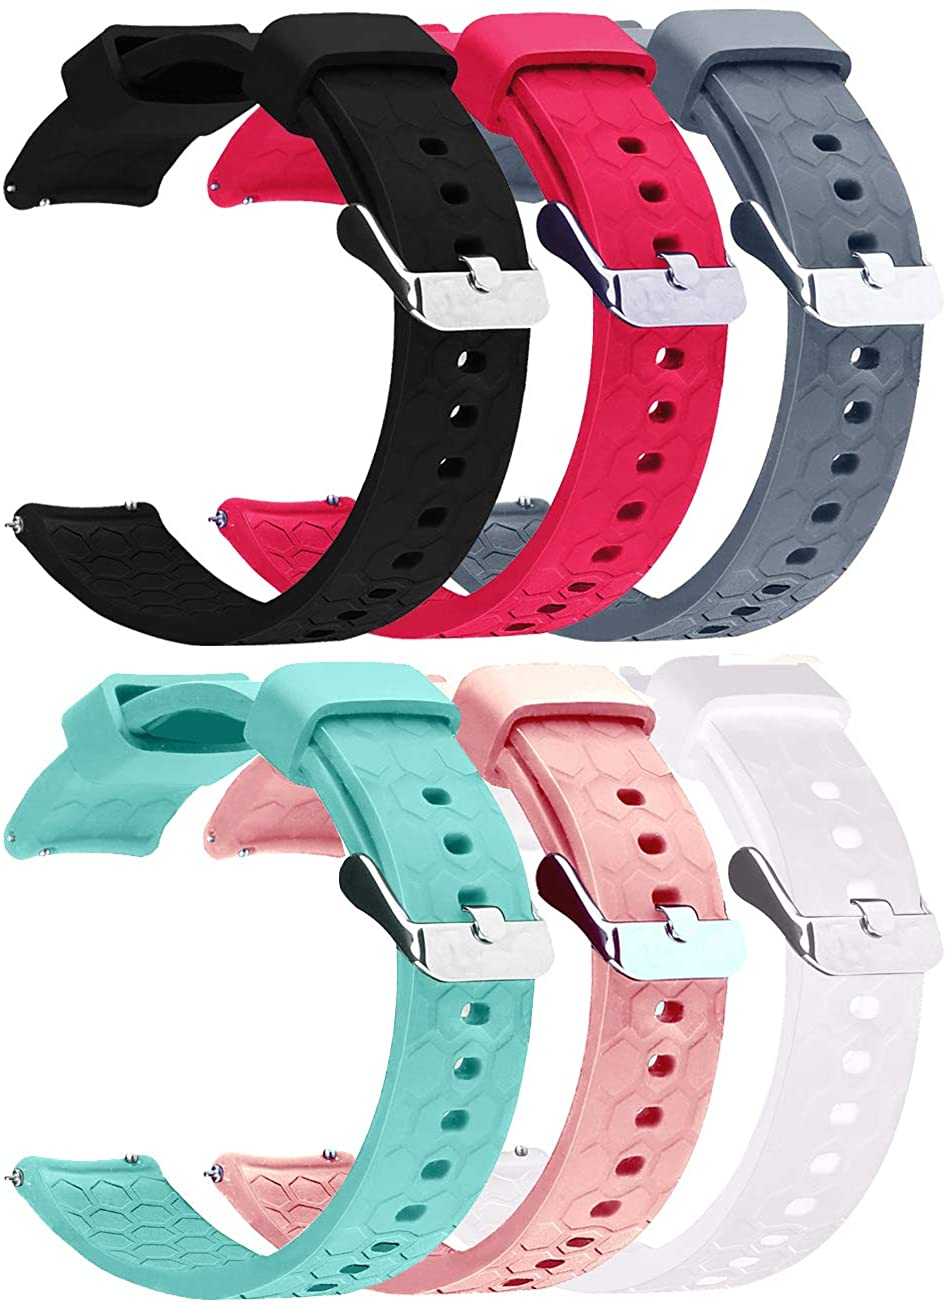 Silicone Bands Compatible with Samsung Galaxy Watch 3 41mm, for Galaxy Watch Active 2 / Active /42mm / Gear Sport / Gear S2 Classic Watch Band 20mm (6-Pack)